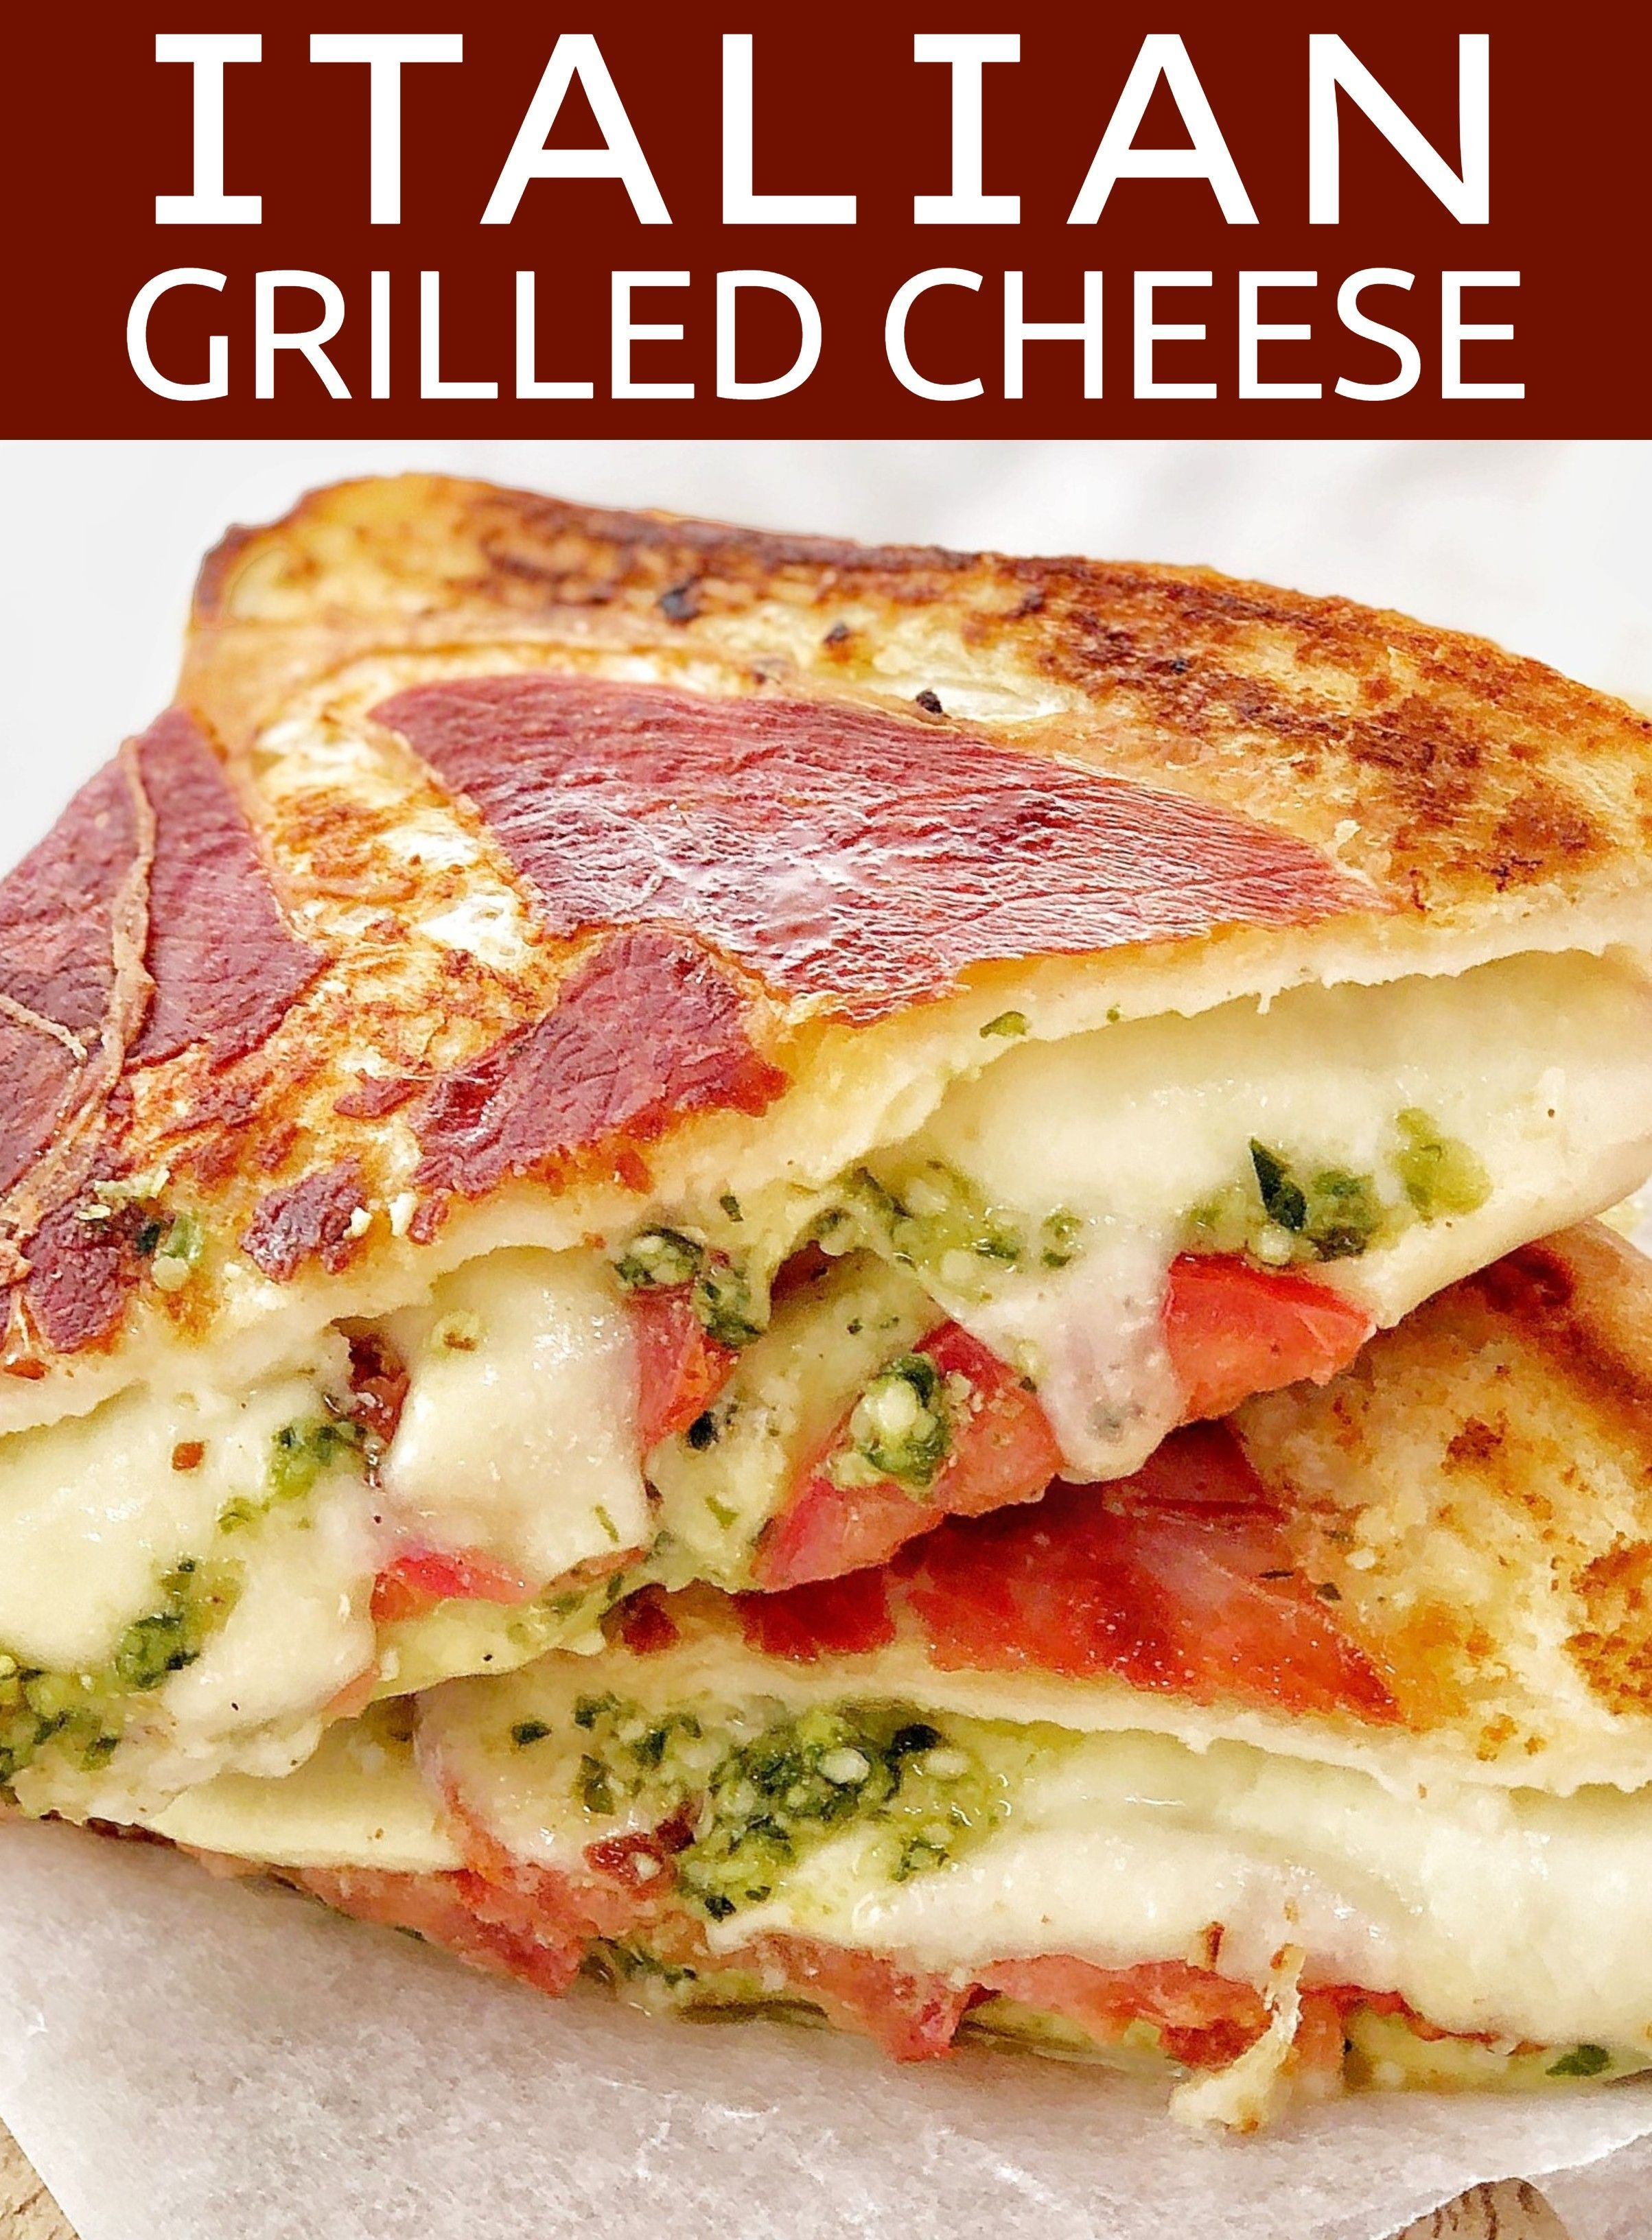 Grilled Cheese with Tomato & Prosciutto